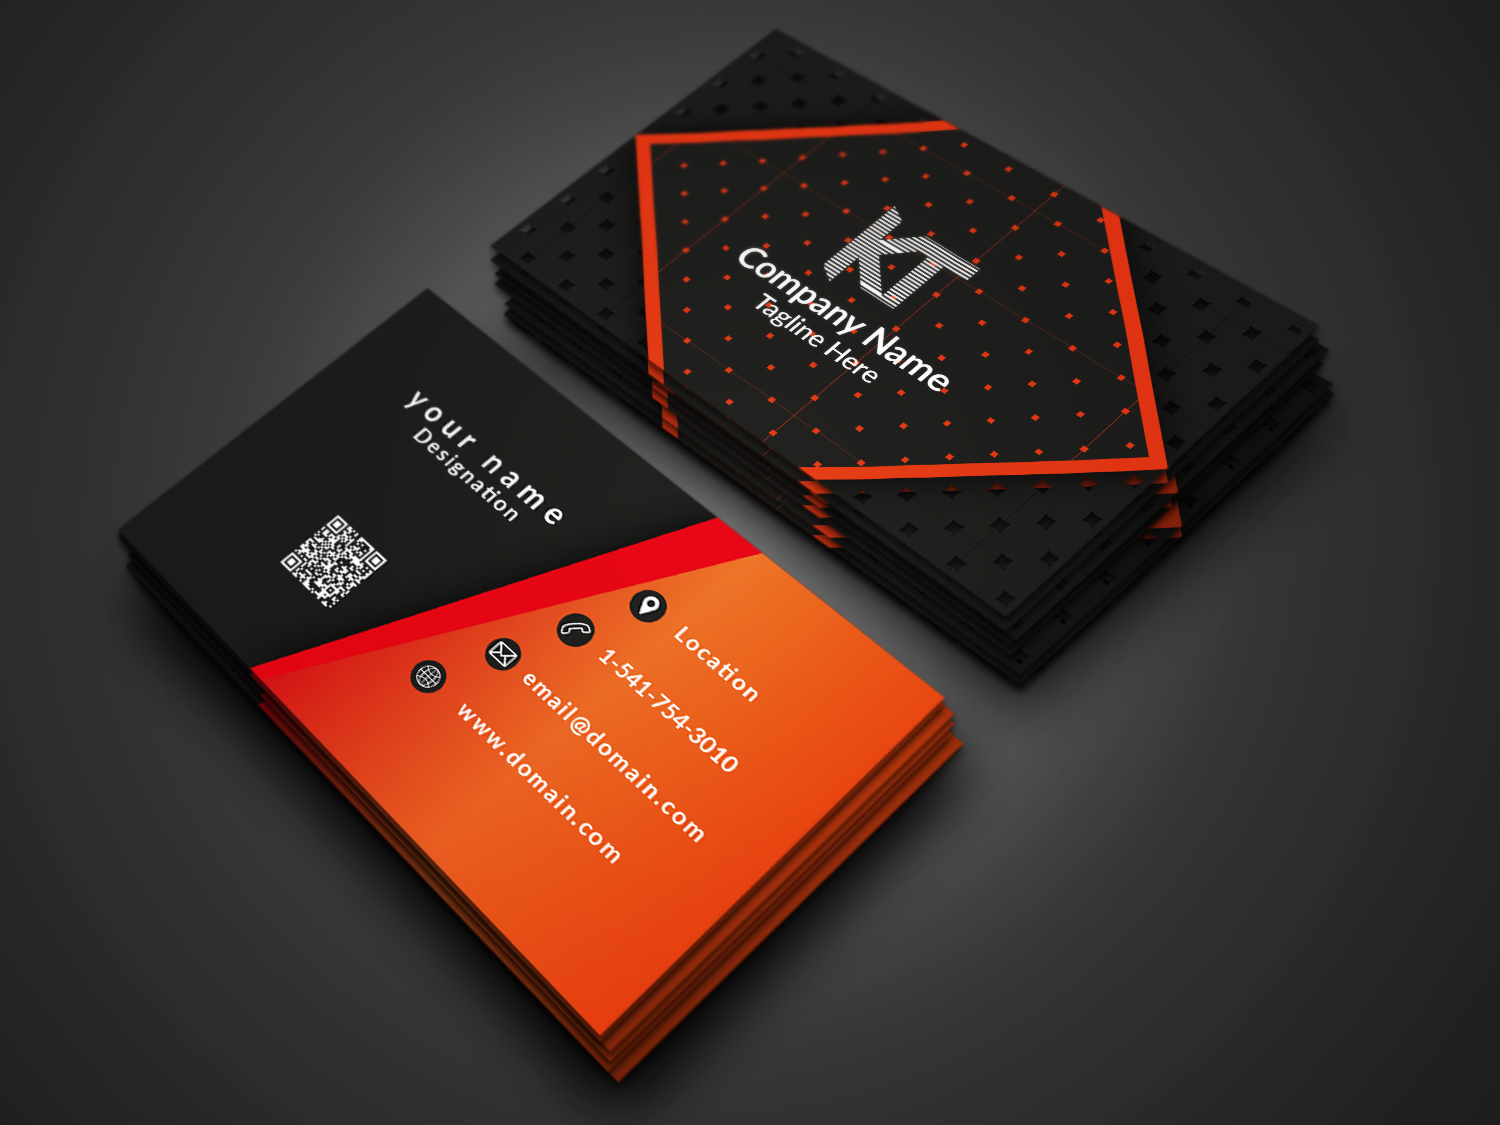 I will design business card in 3 hours that will be modern and trendy